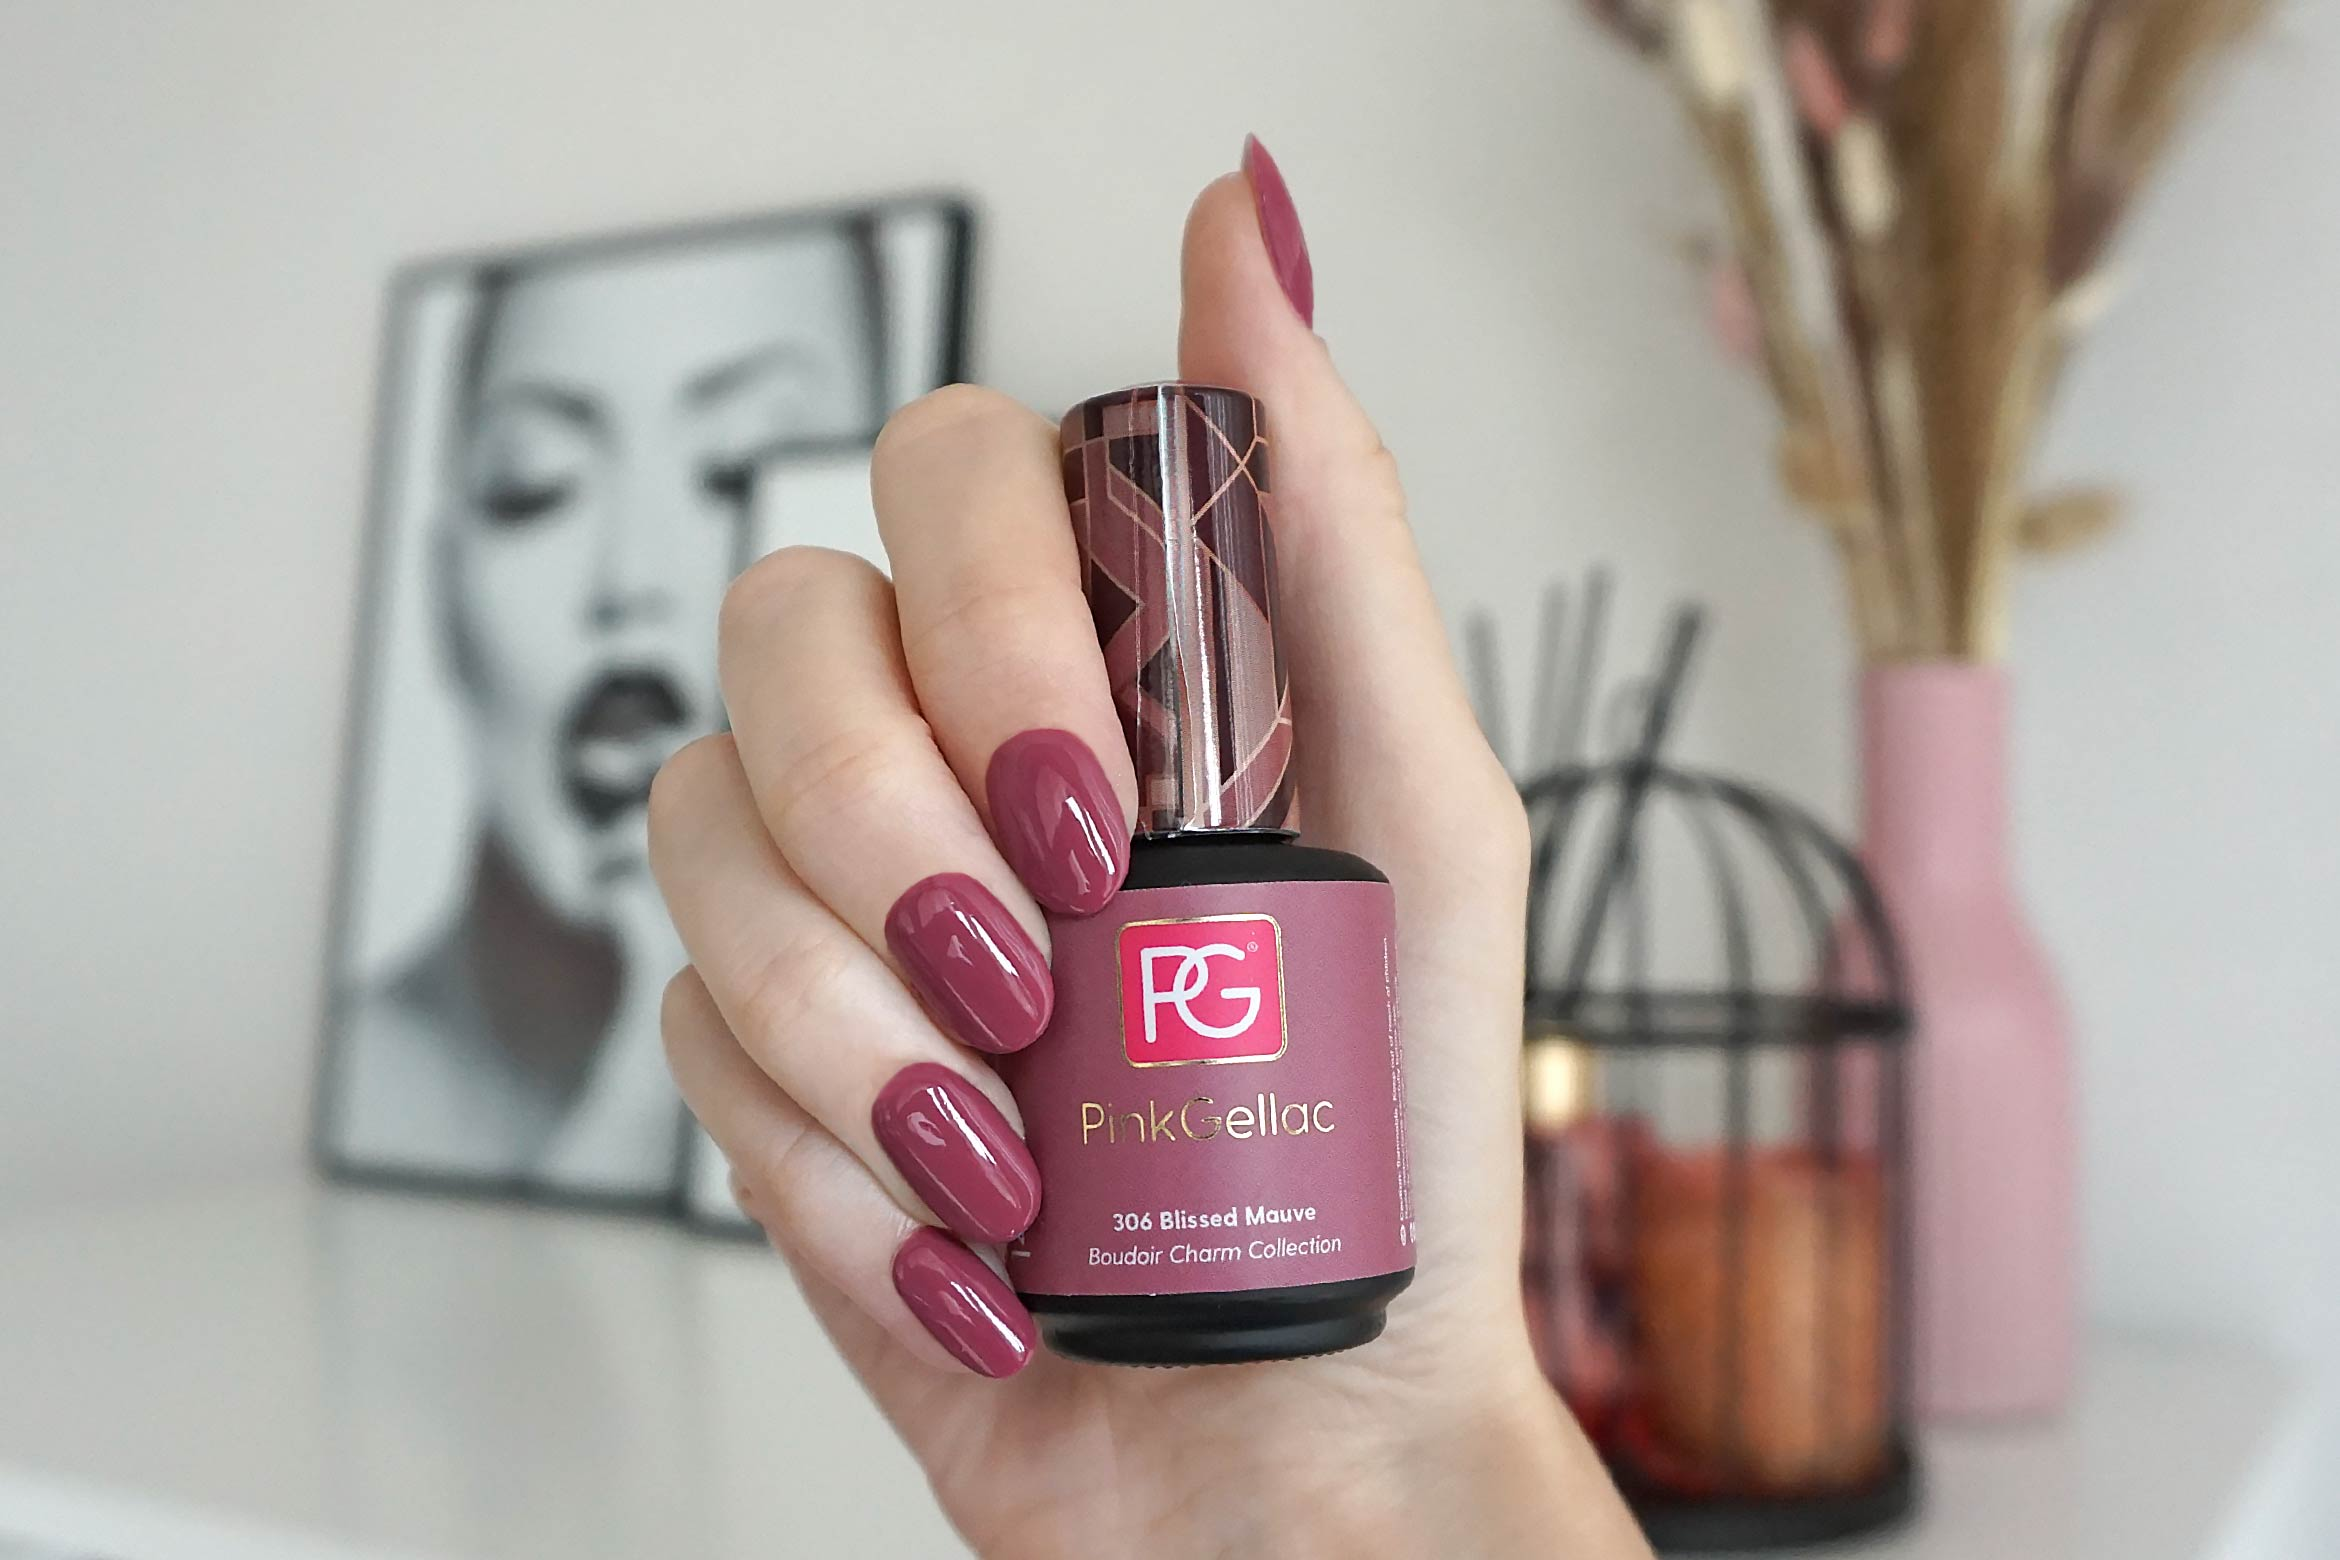 pink gellac 306 blissed mauve